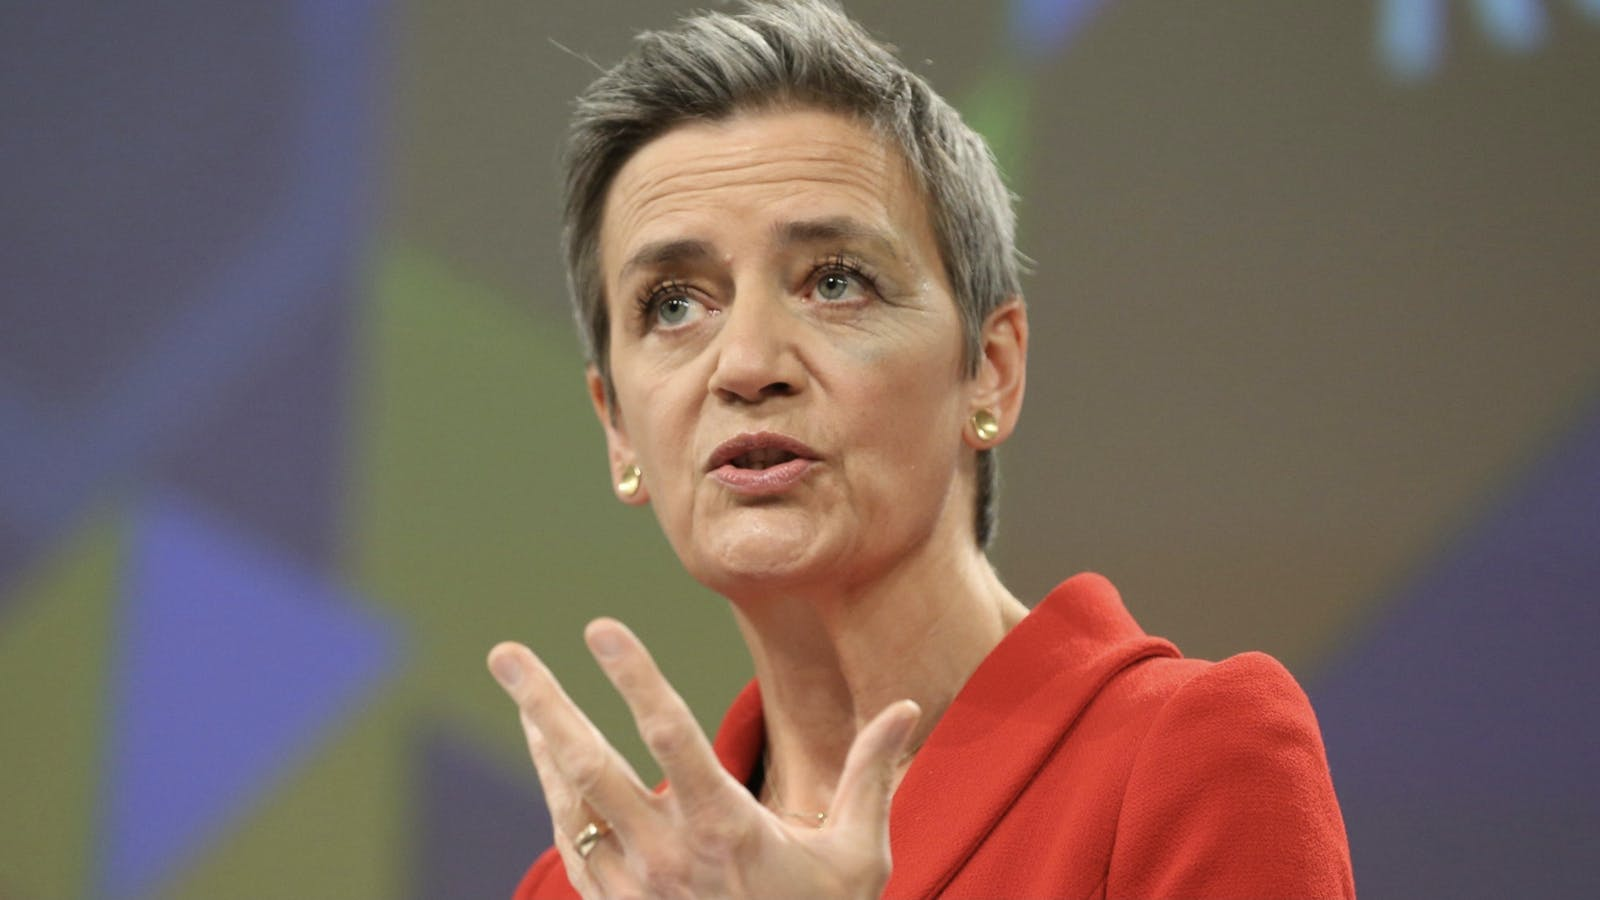 The European Commission's competition commissioner, Margrethe Vestager. Photo by Bloomberg